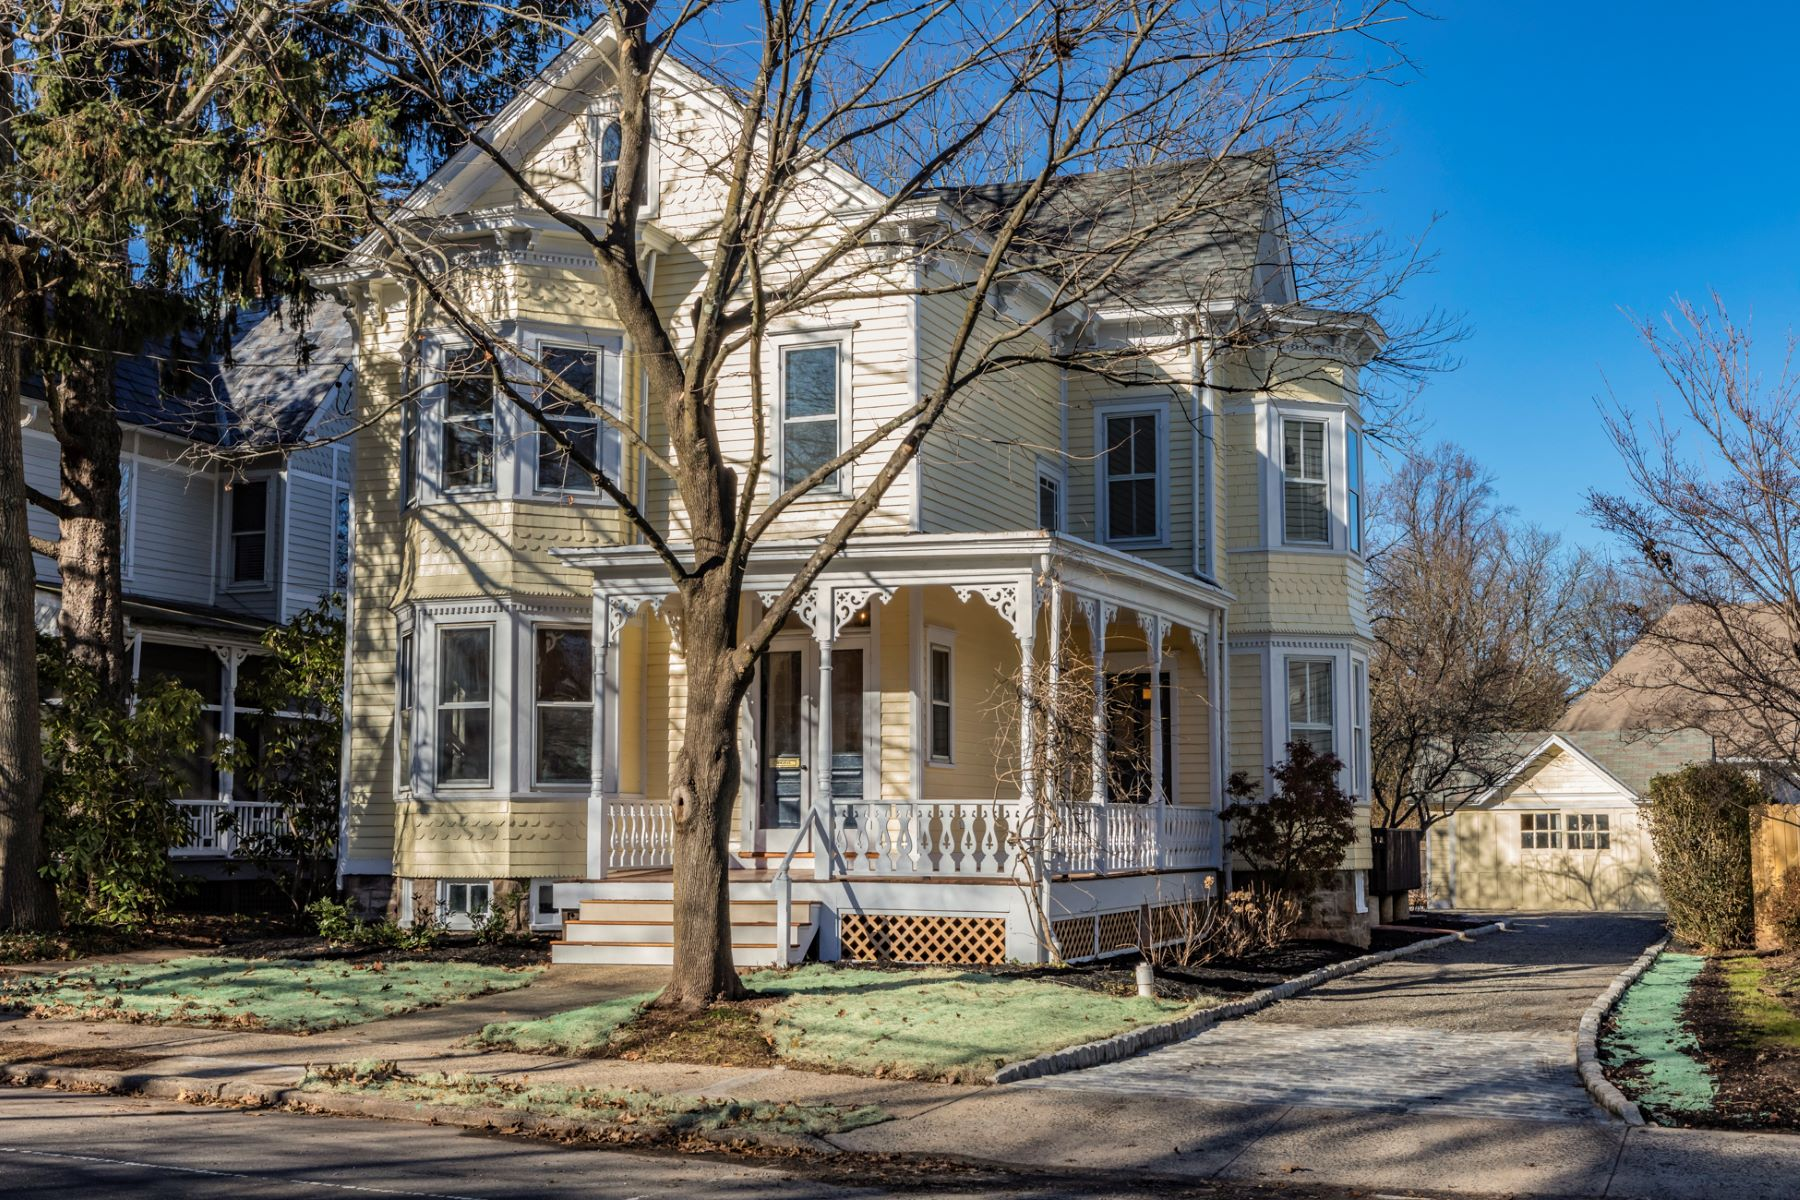 Single Family Homes for Sale at Historic Charm Restored With Every Modern Amenity 25 East Delaware Avenue, Pennington, New Jersey 08534 United States